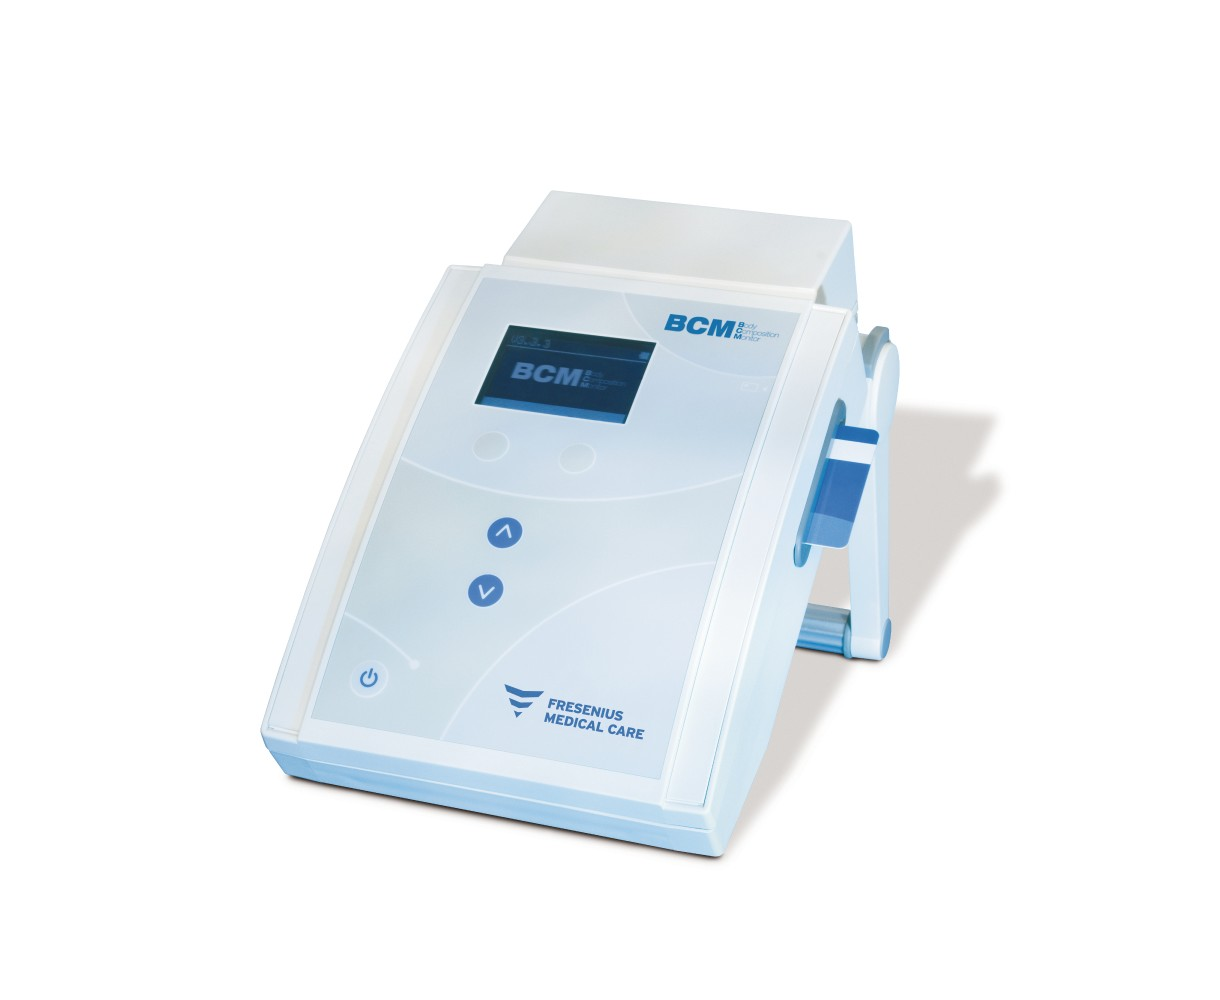 BCM – Body Composition Monitor-enhet